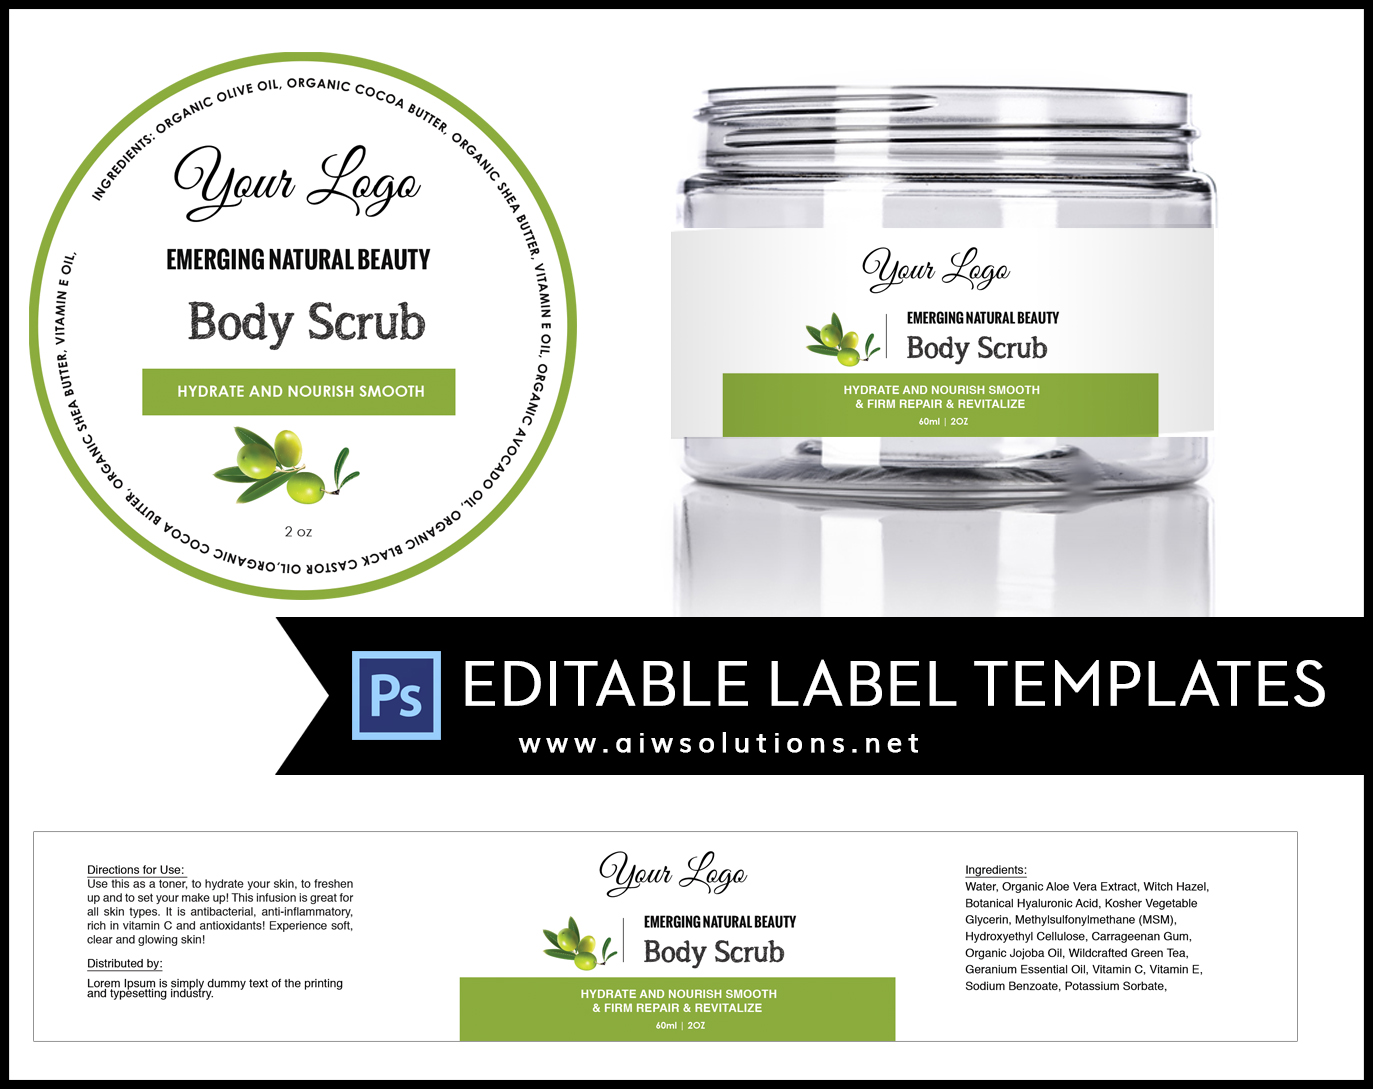 Aiwsolutions  Label Design Templates